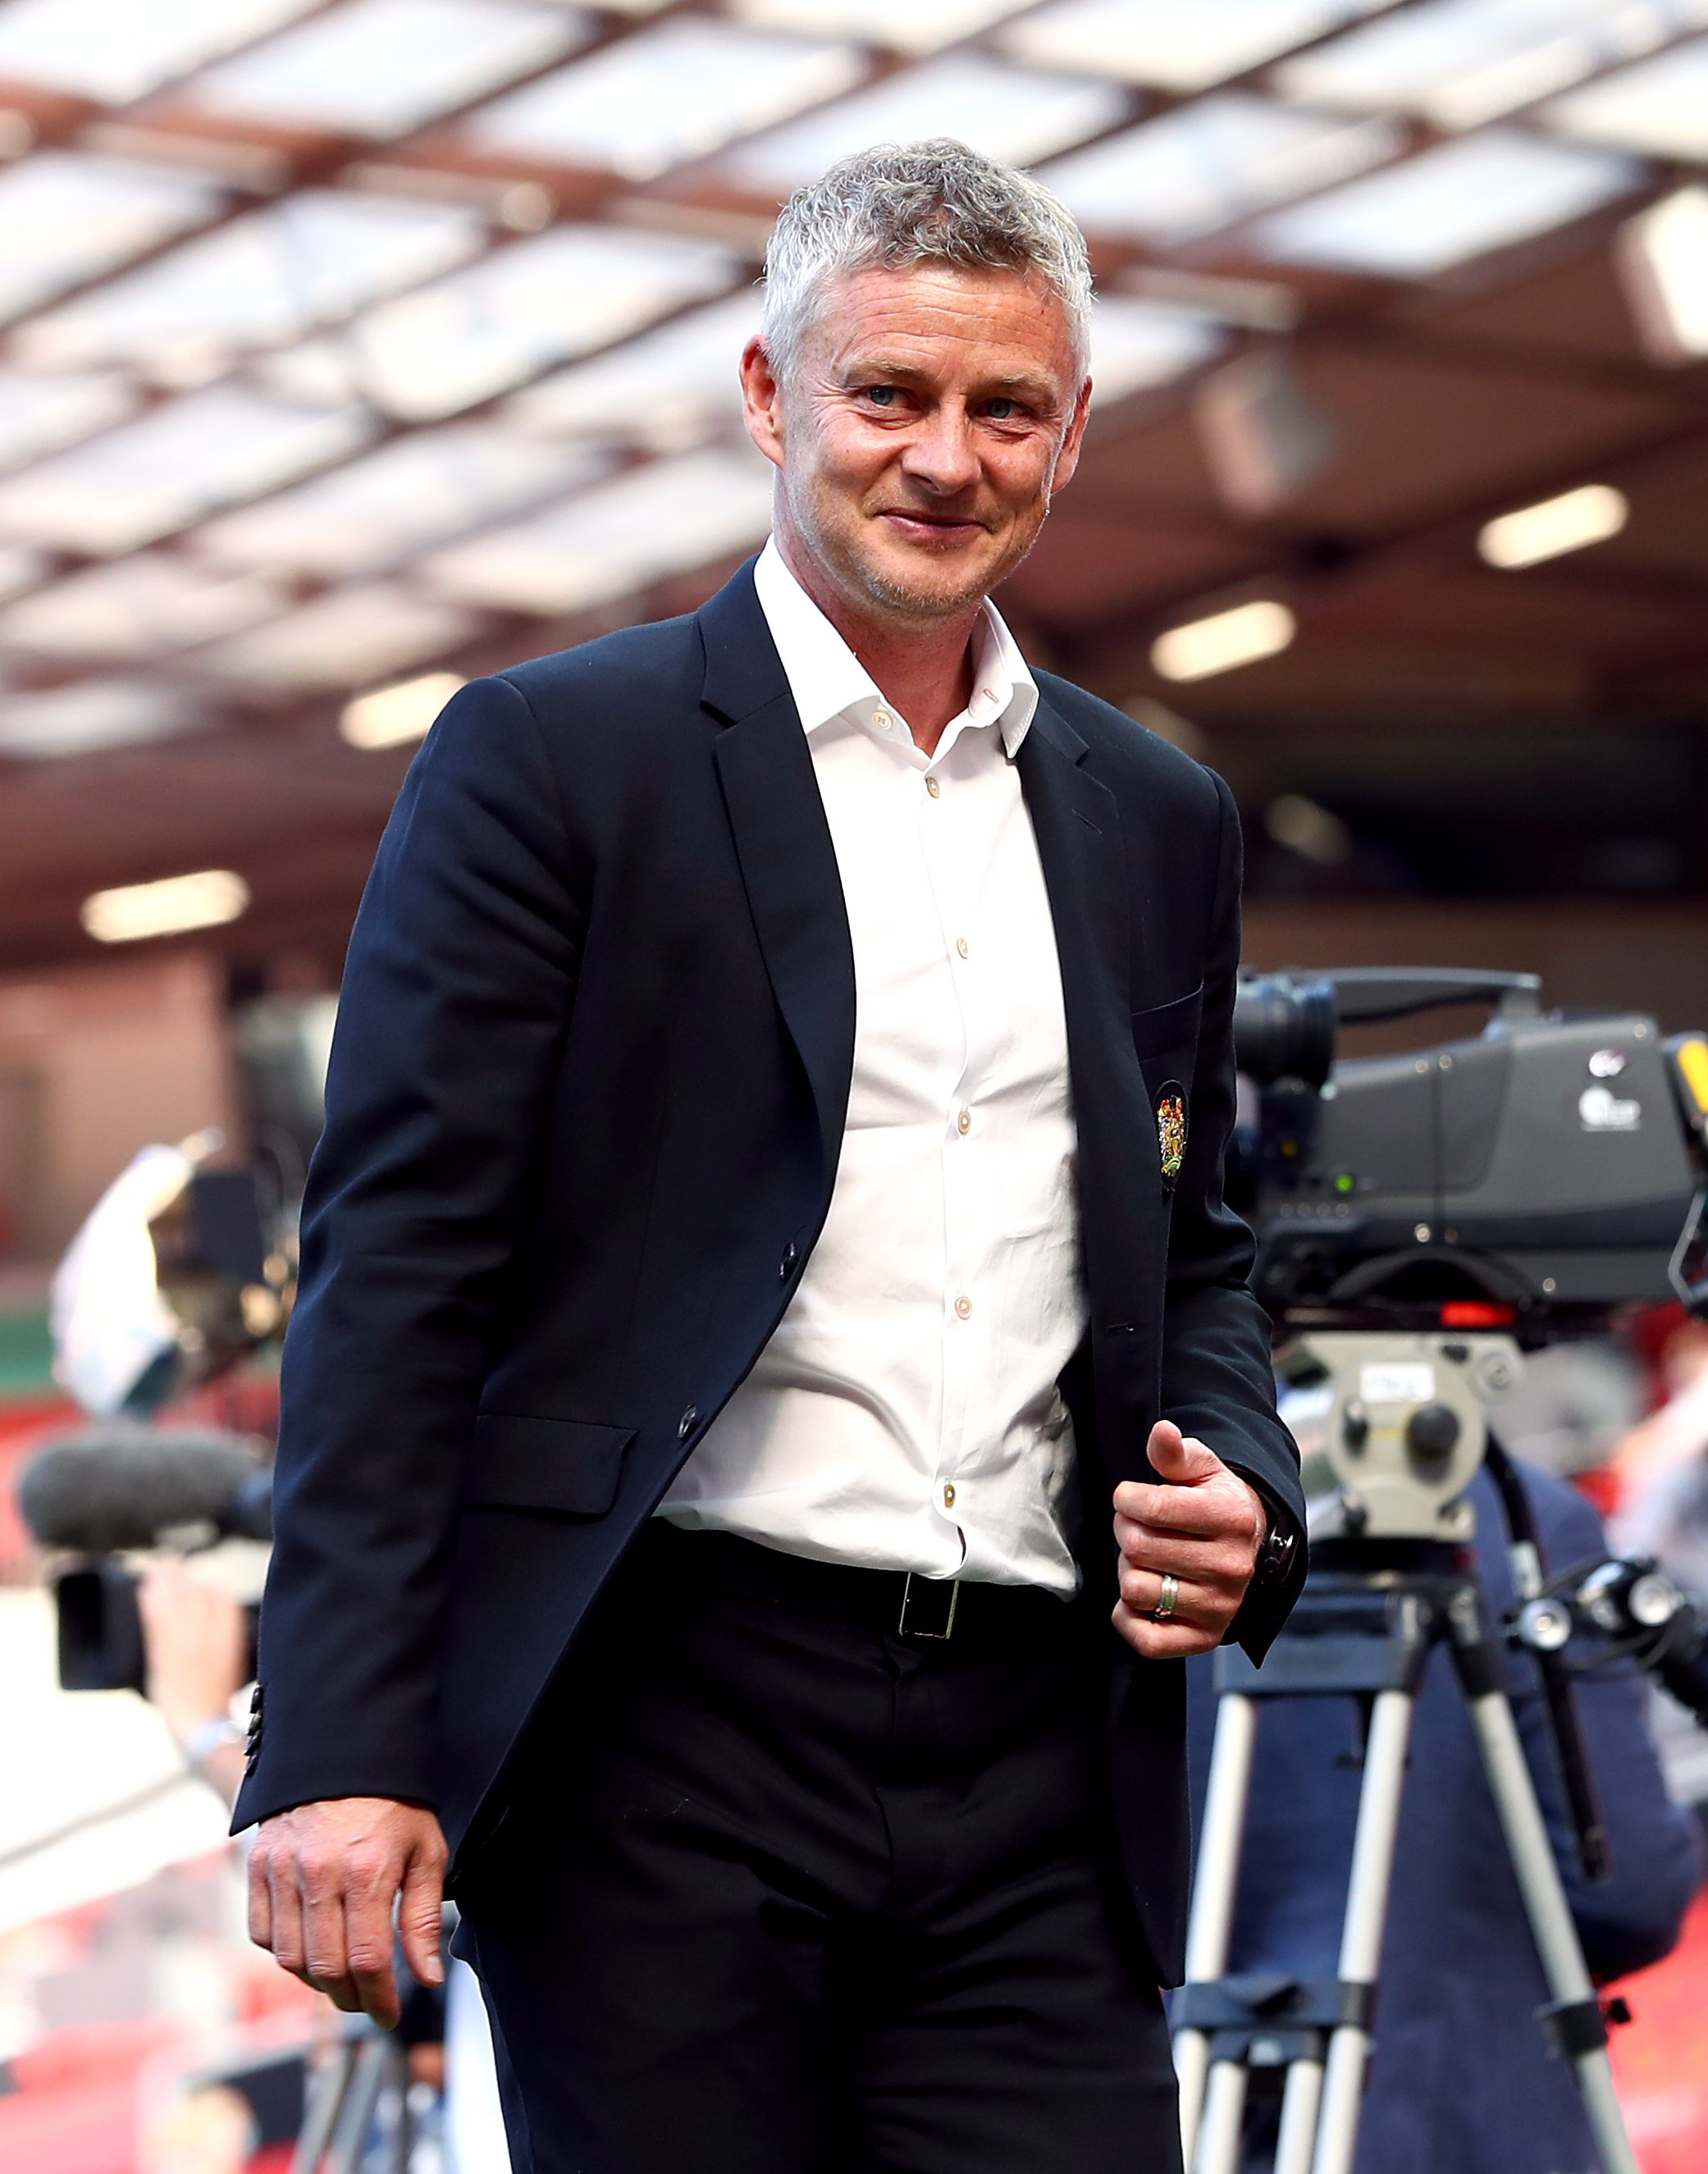 Ole Gunnar Solskjaer knows important summer coming up for Manchester United